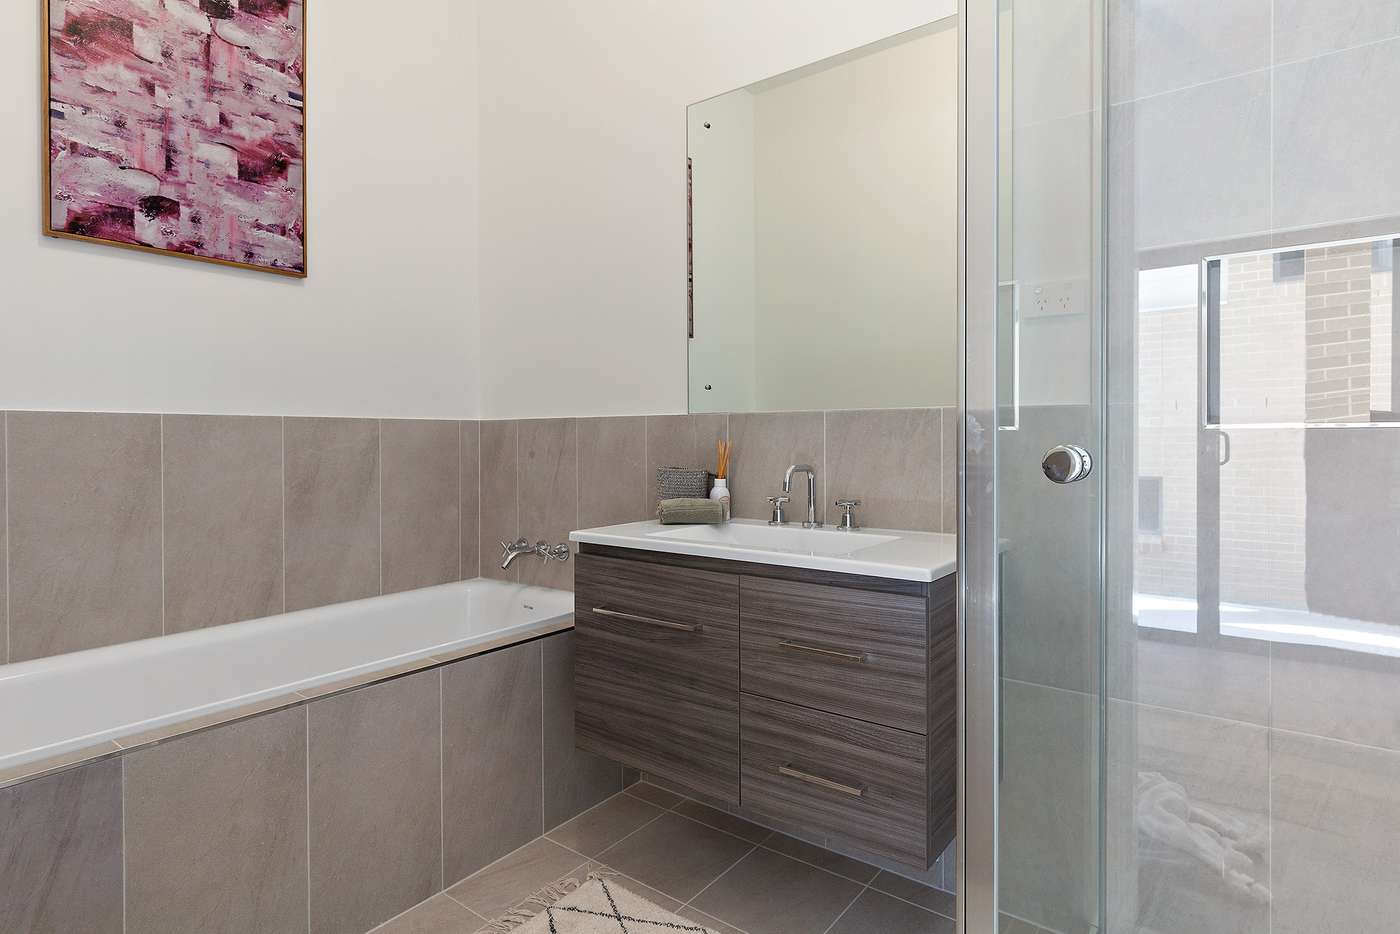 Sixth view of Homely house listing, 1/45 Curzon Road, New Lambton NSW 2305